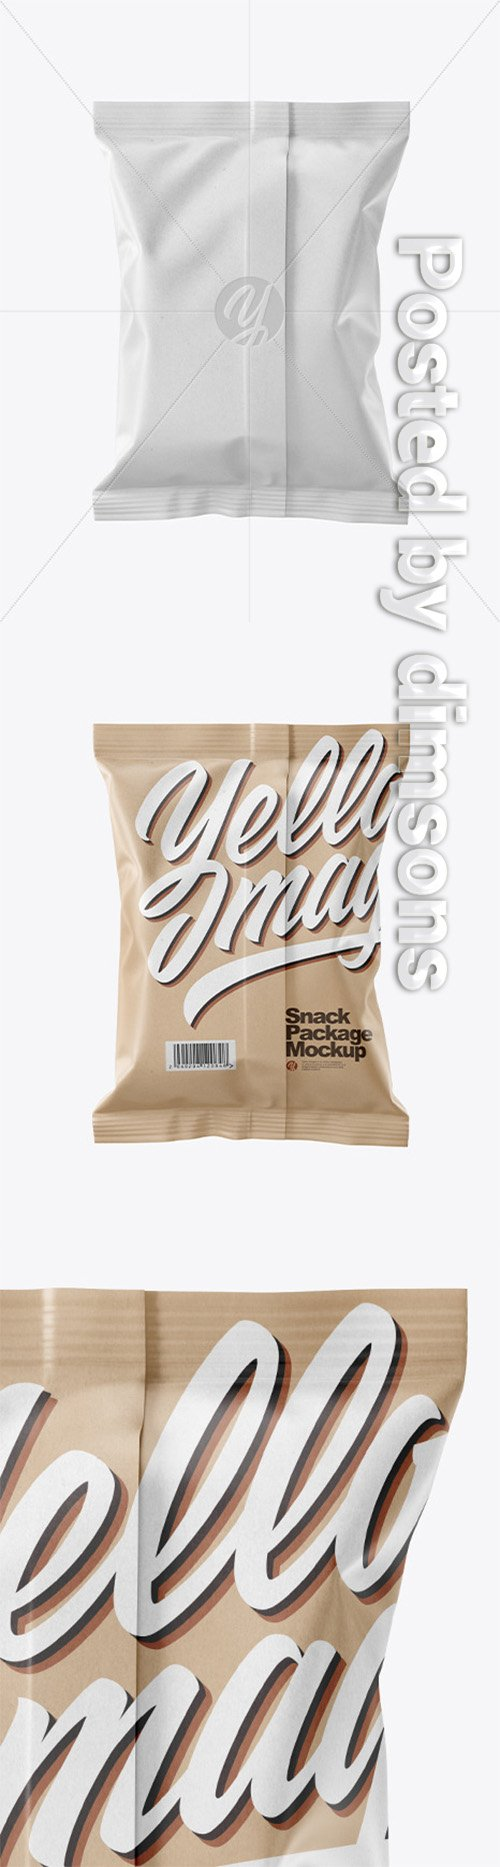 Kraft Snack Package Mockup - Back View 50536 TIF